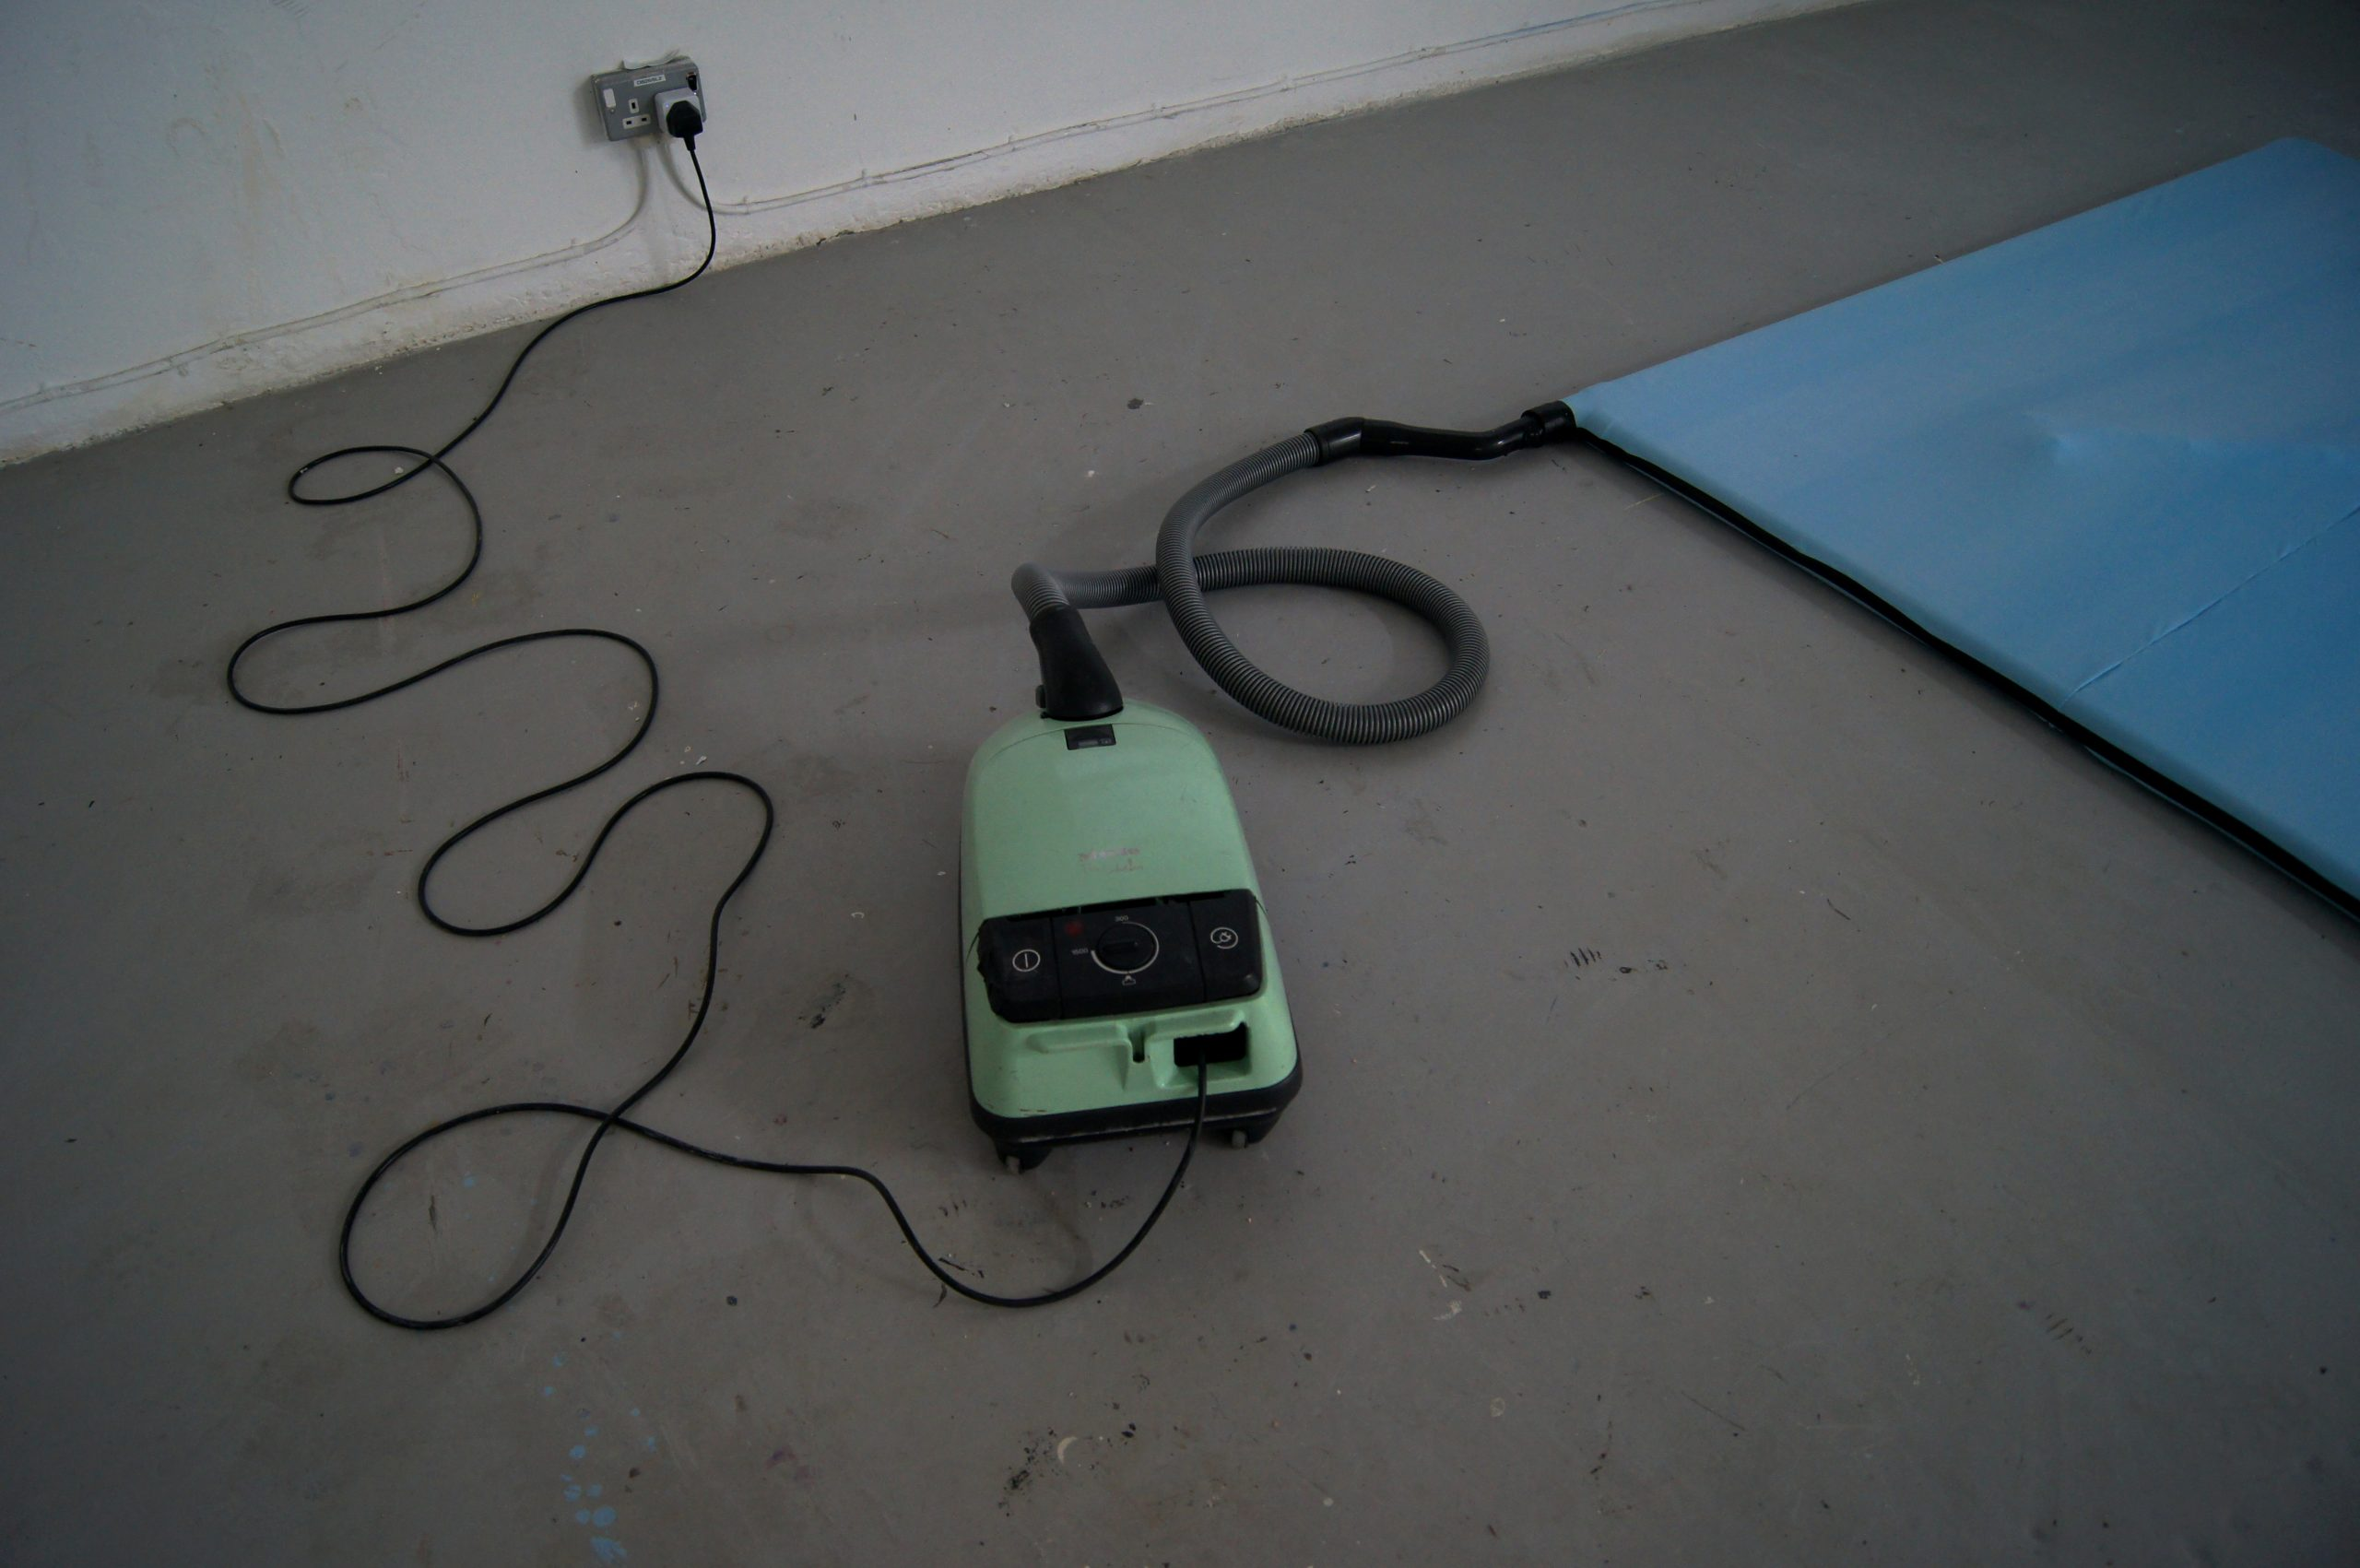 hoover and synthetic latex